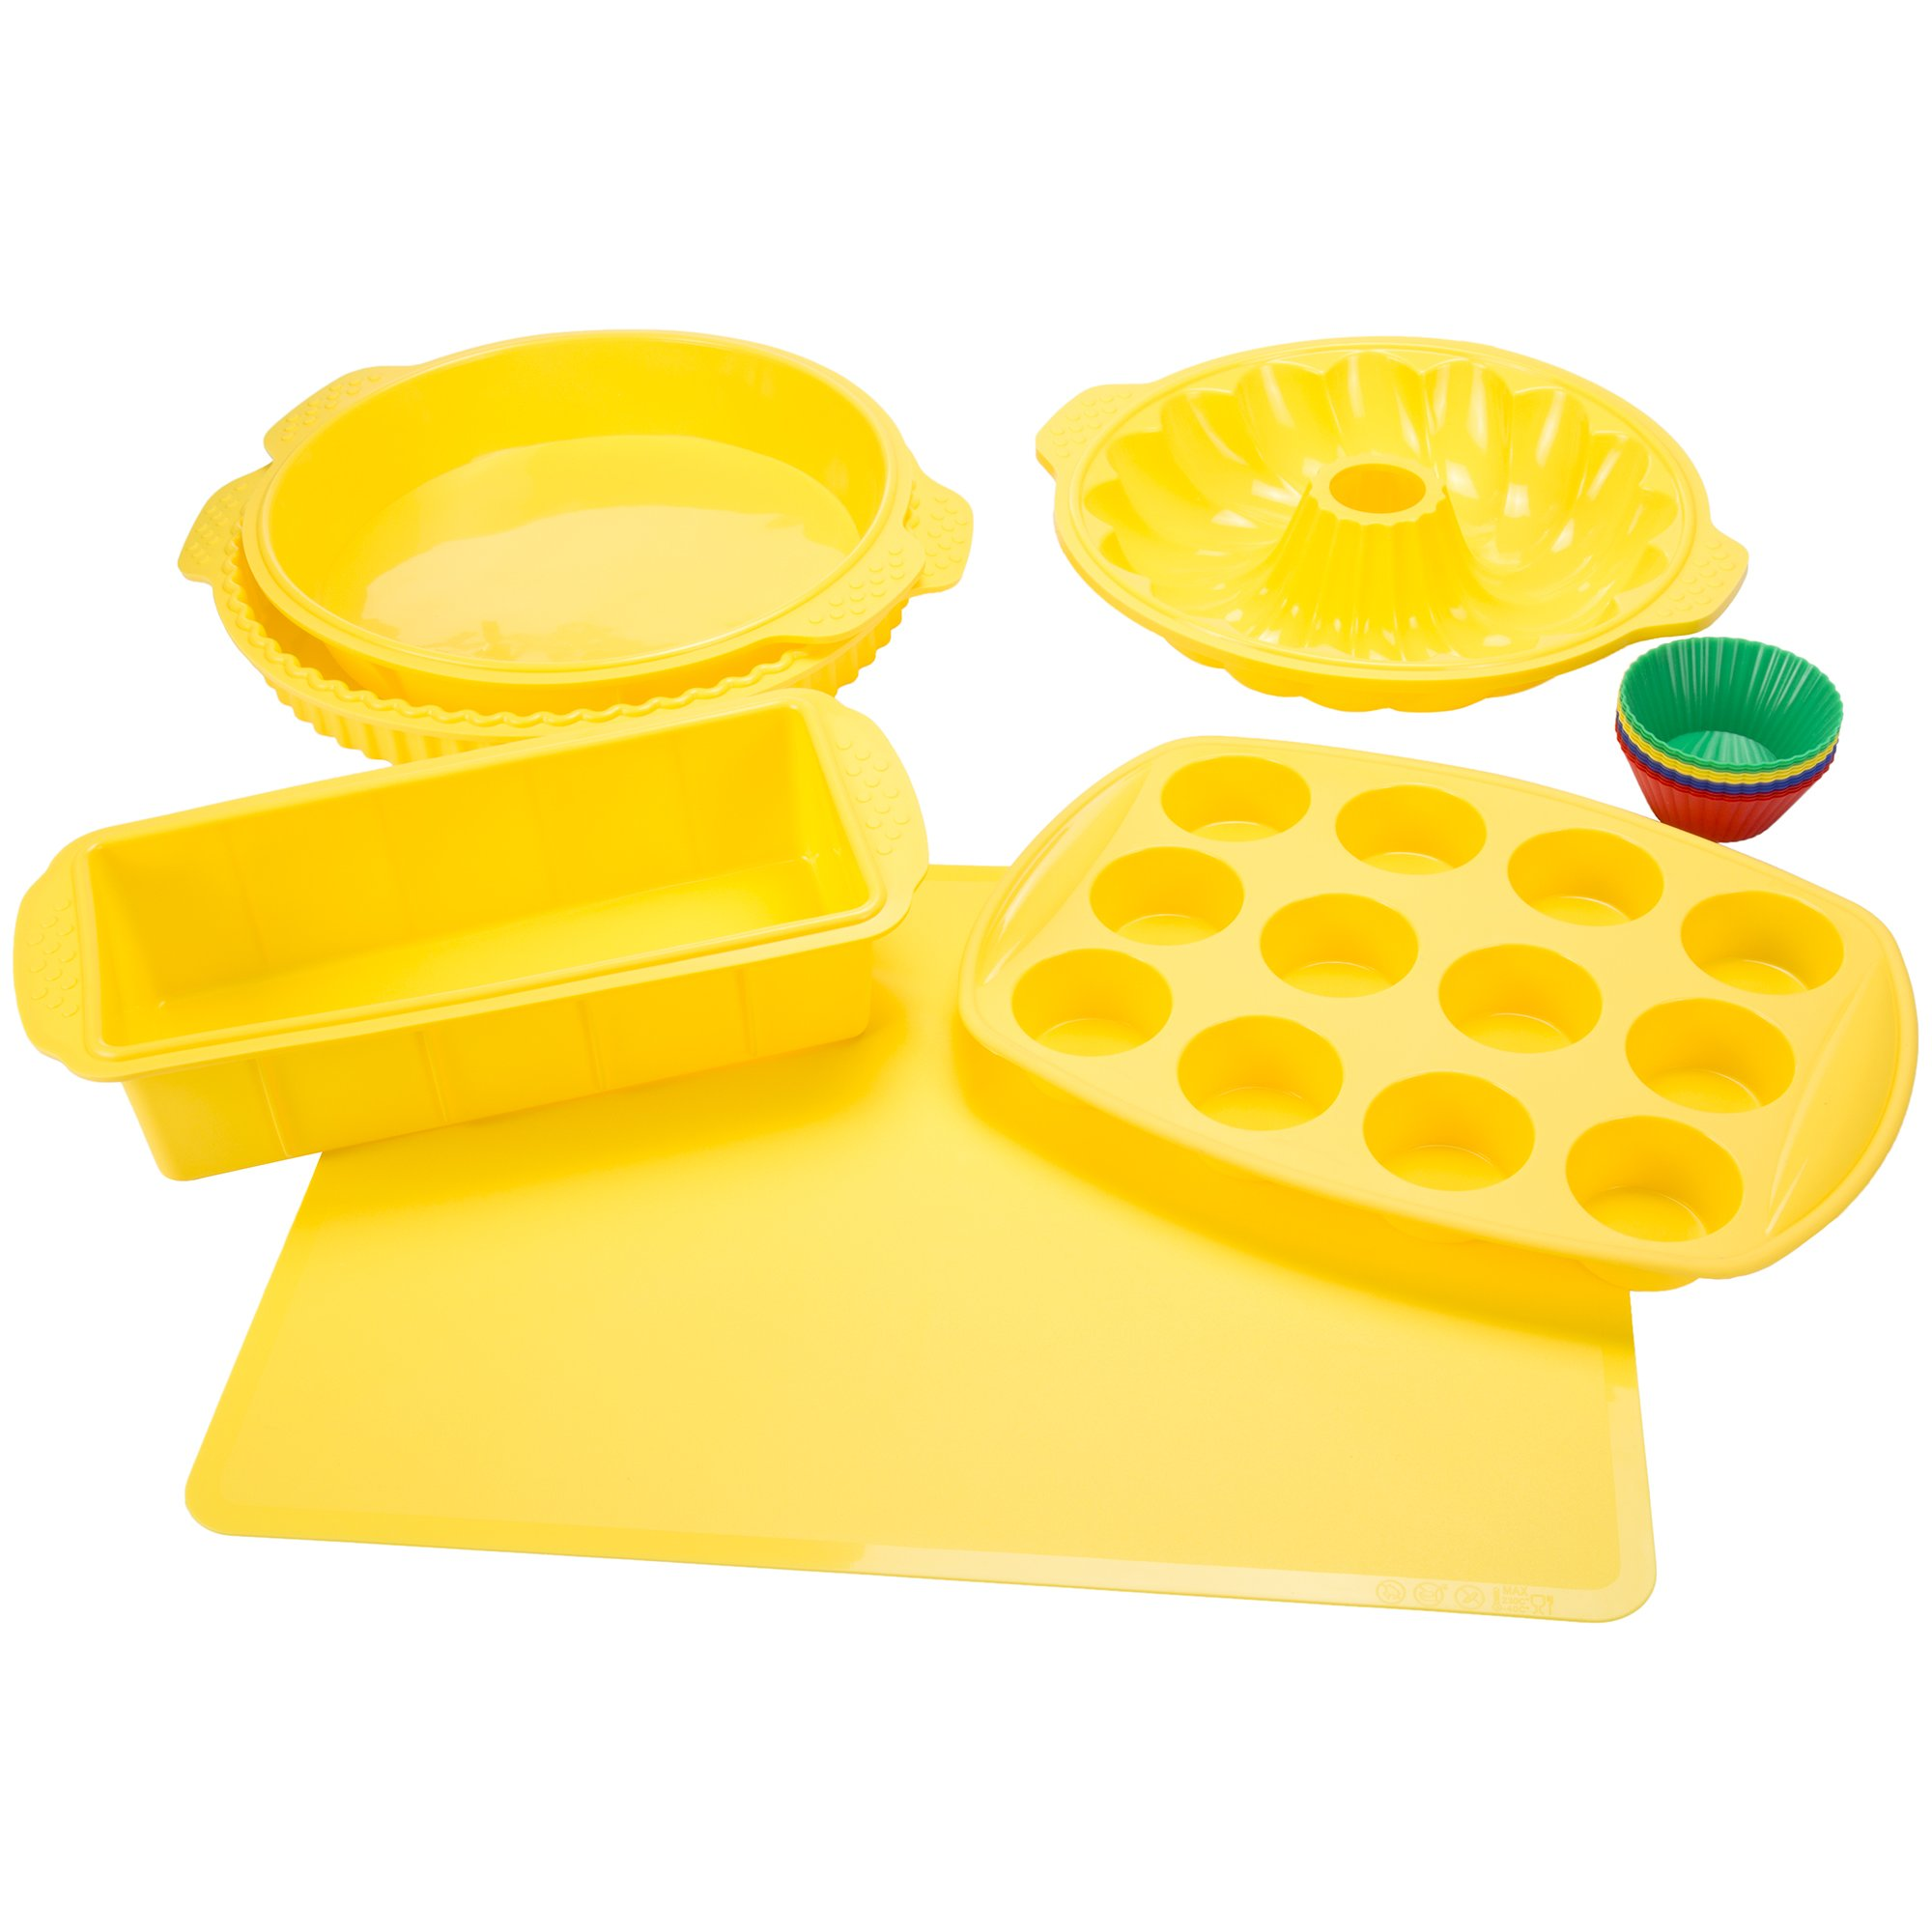 Silicone Bakeware Set, 18-Piece Set including Cupcake Molds, Muffin Pan, Bread Pan, Cookie Sheet, Bundt Pan, Baking Supplies by Classic Cuisine by Classic Cuisine